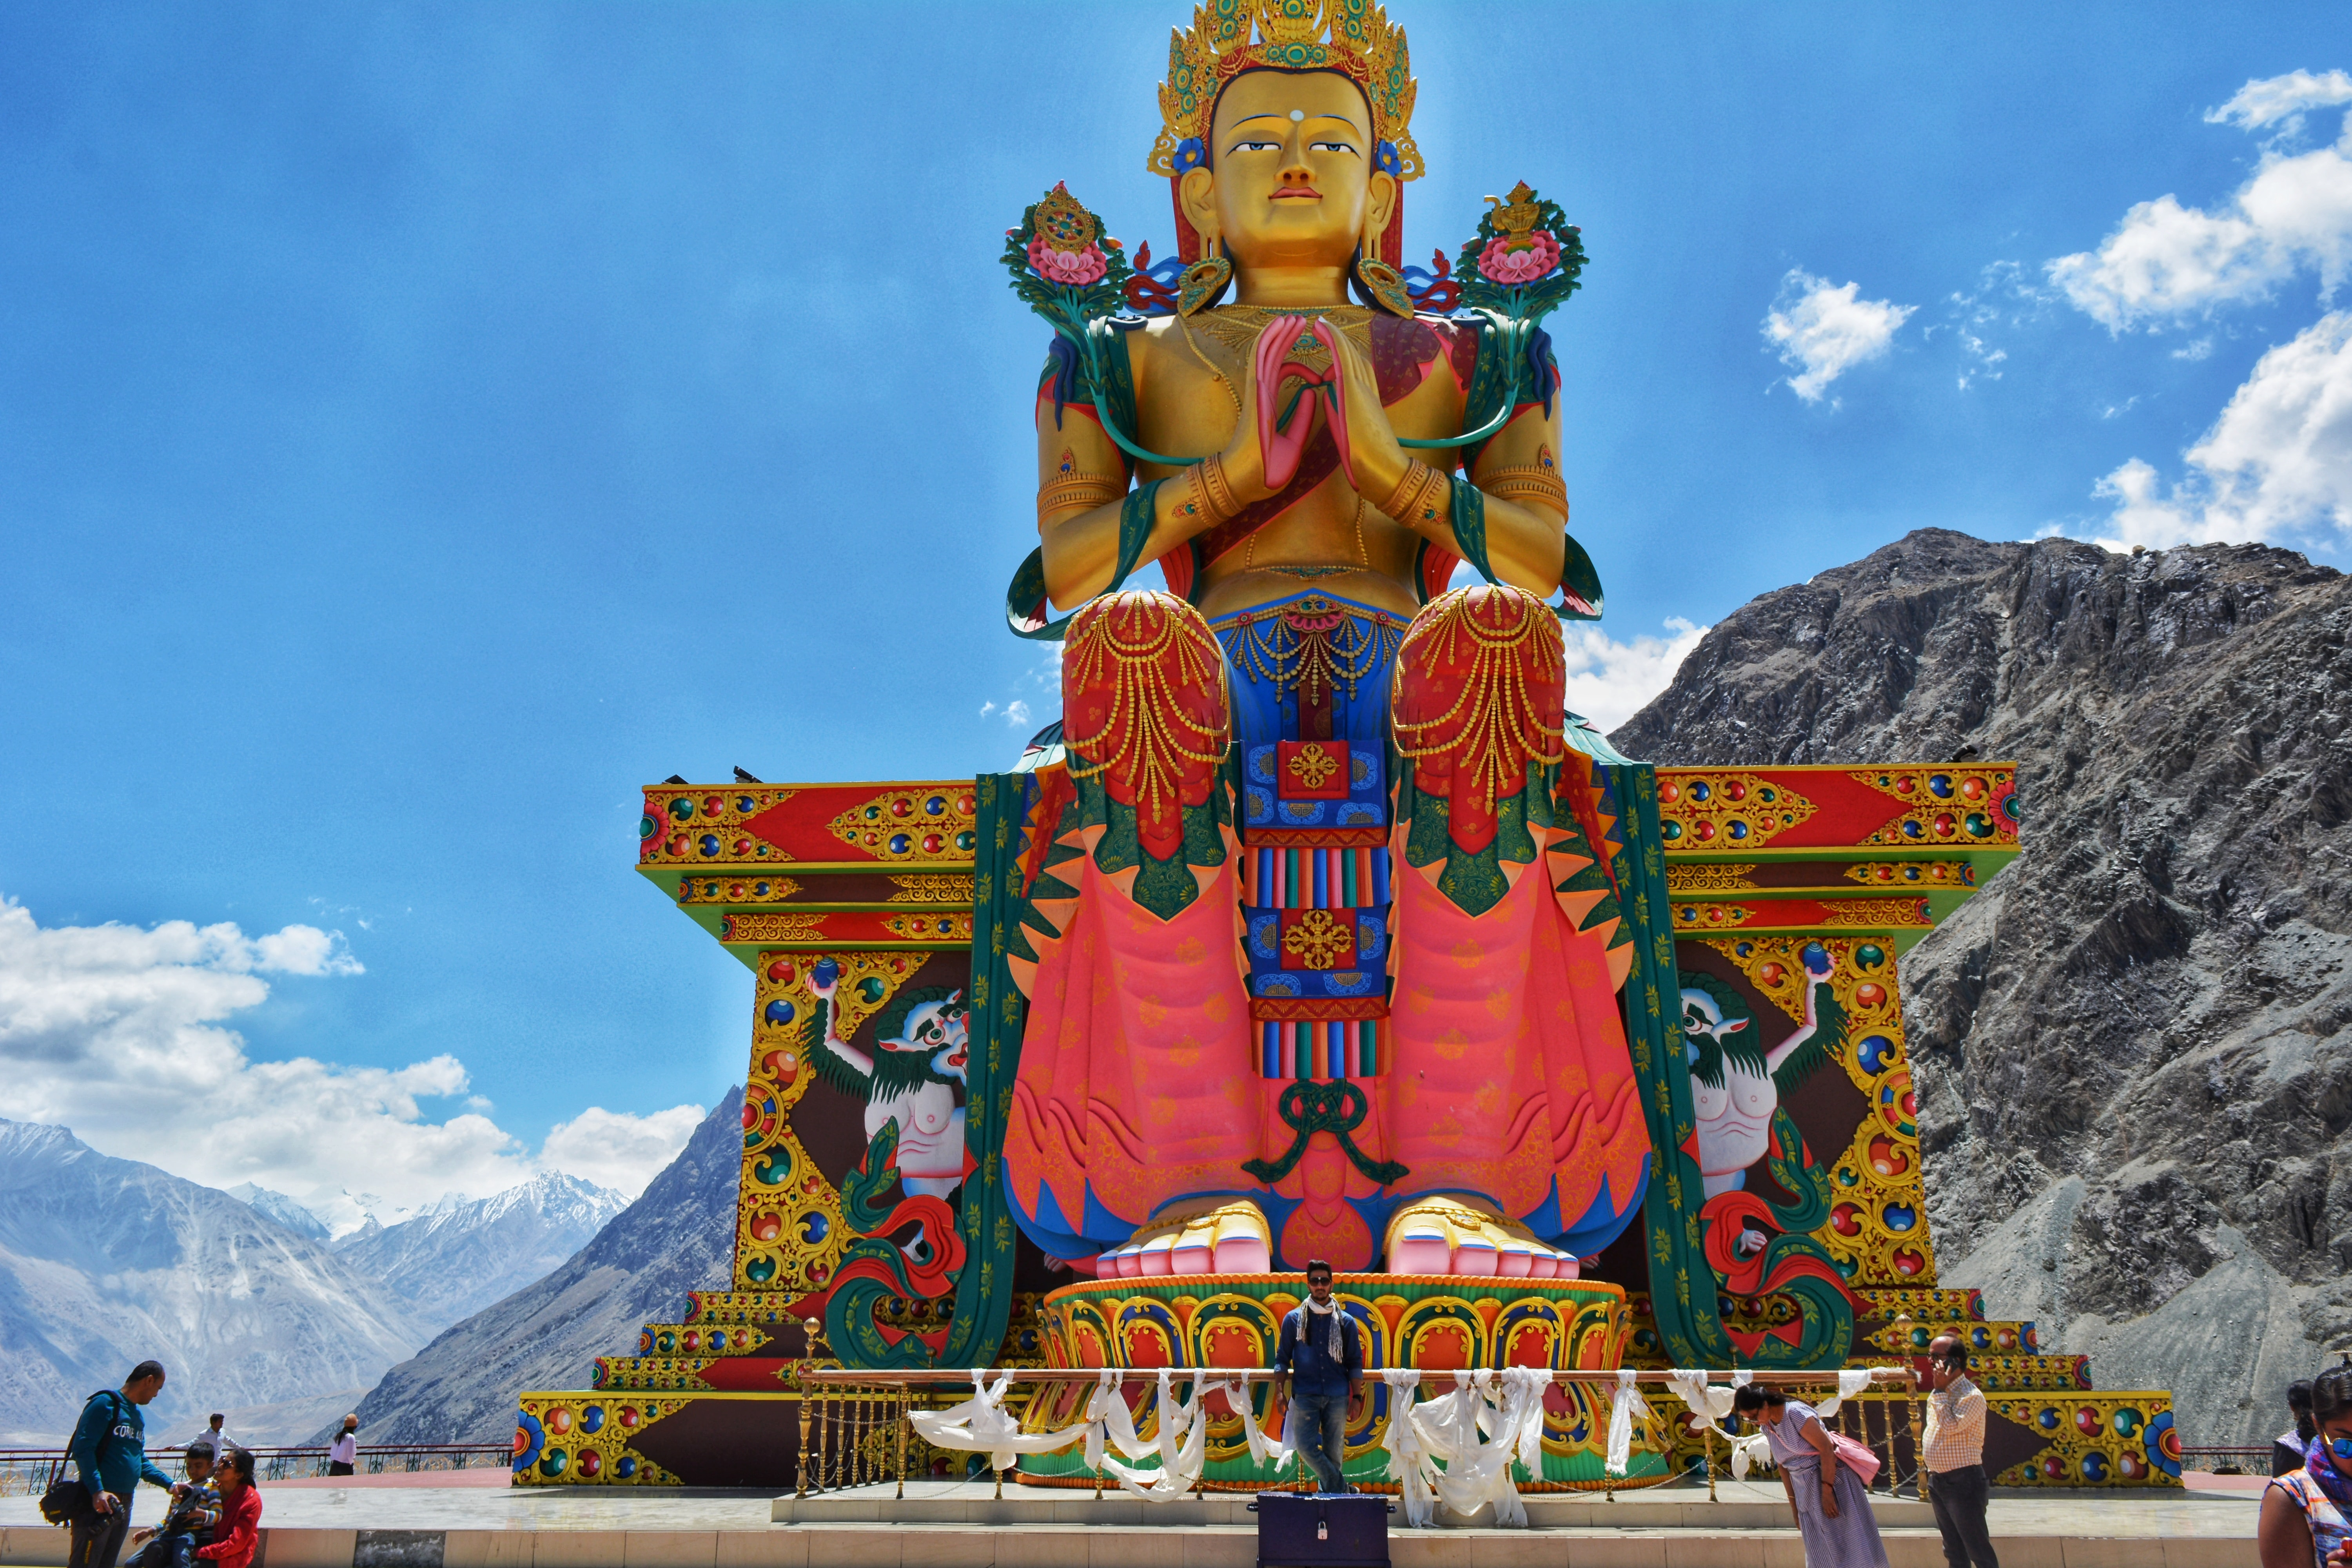 brown buddha statue in front of a mountain